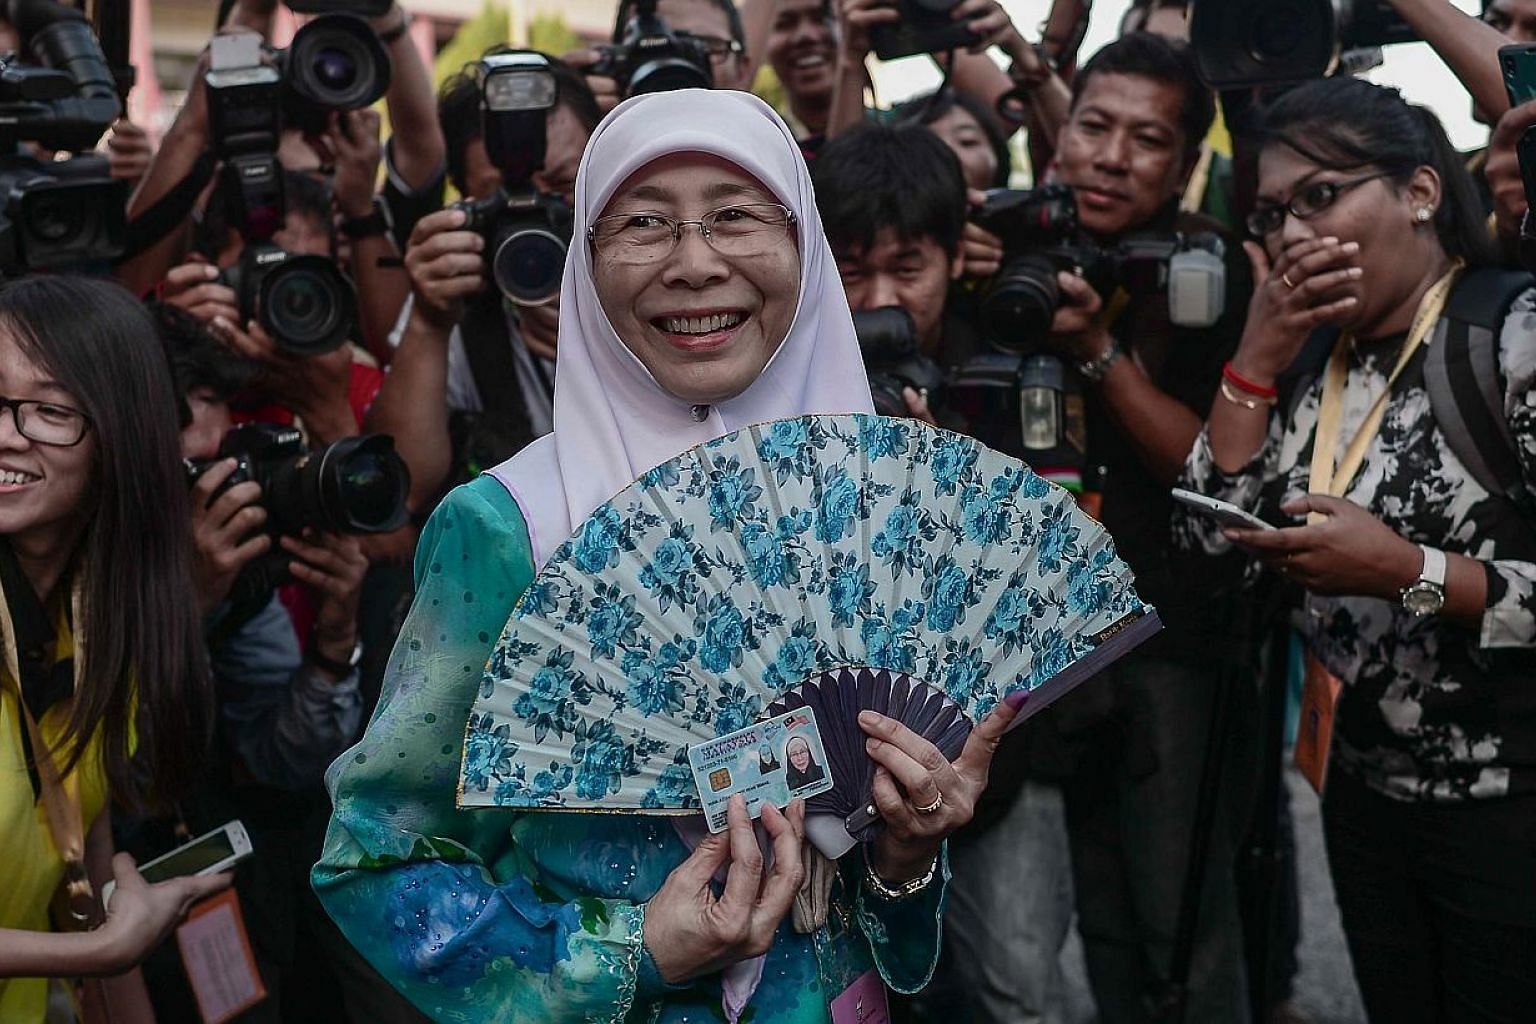 Parti Keadilan Rakyat (PKR) presidentWan Azizah Wan Ismail(centre), wife of Malaysian opposition leader Anwar Ibrahim, arrives at a polling station during a by-election in Permatang Pauh, in the northern Malaysian state of Penang on March